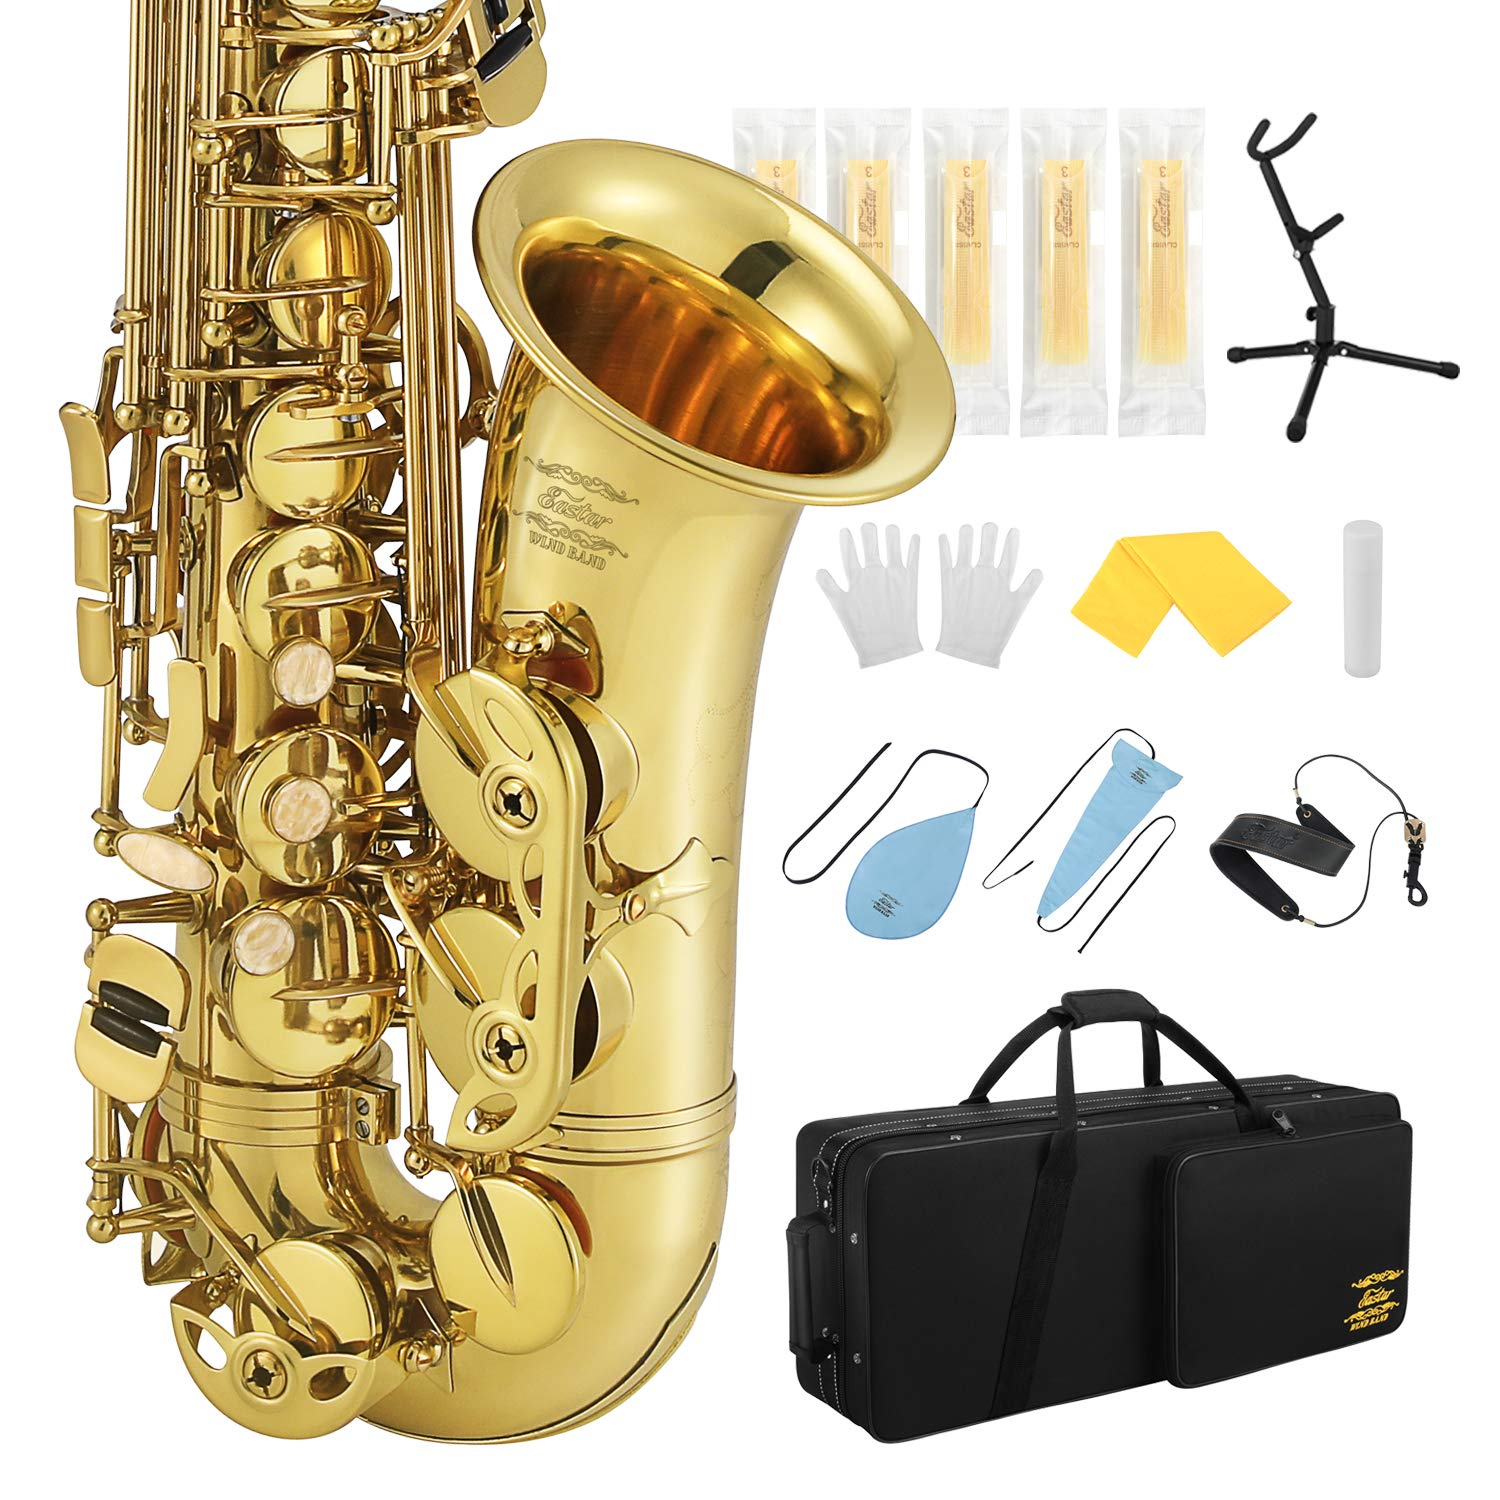 Eastar Professional Alto Saxophone E Flat AS-Ⅲ Commander Eb Saxophone Gold Full Kit Sax With Carrying Case Mouthpiece Strap Reeds Stand Cork Grease